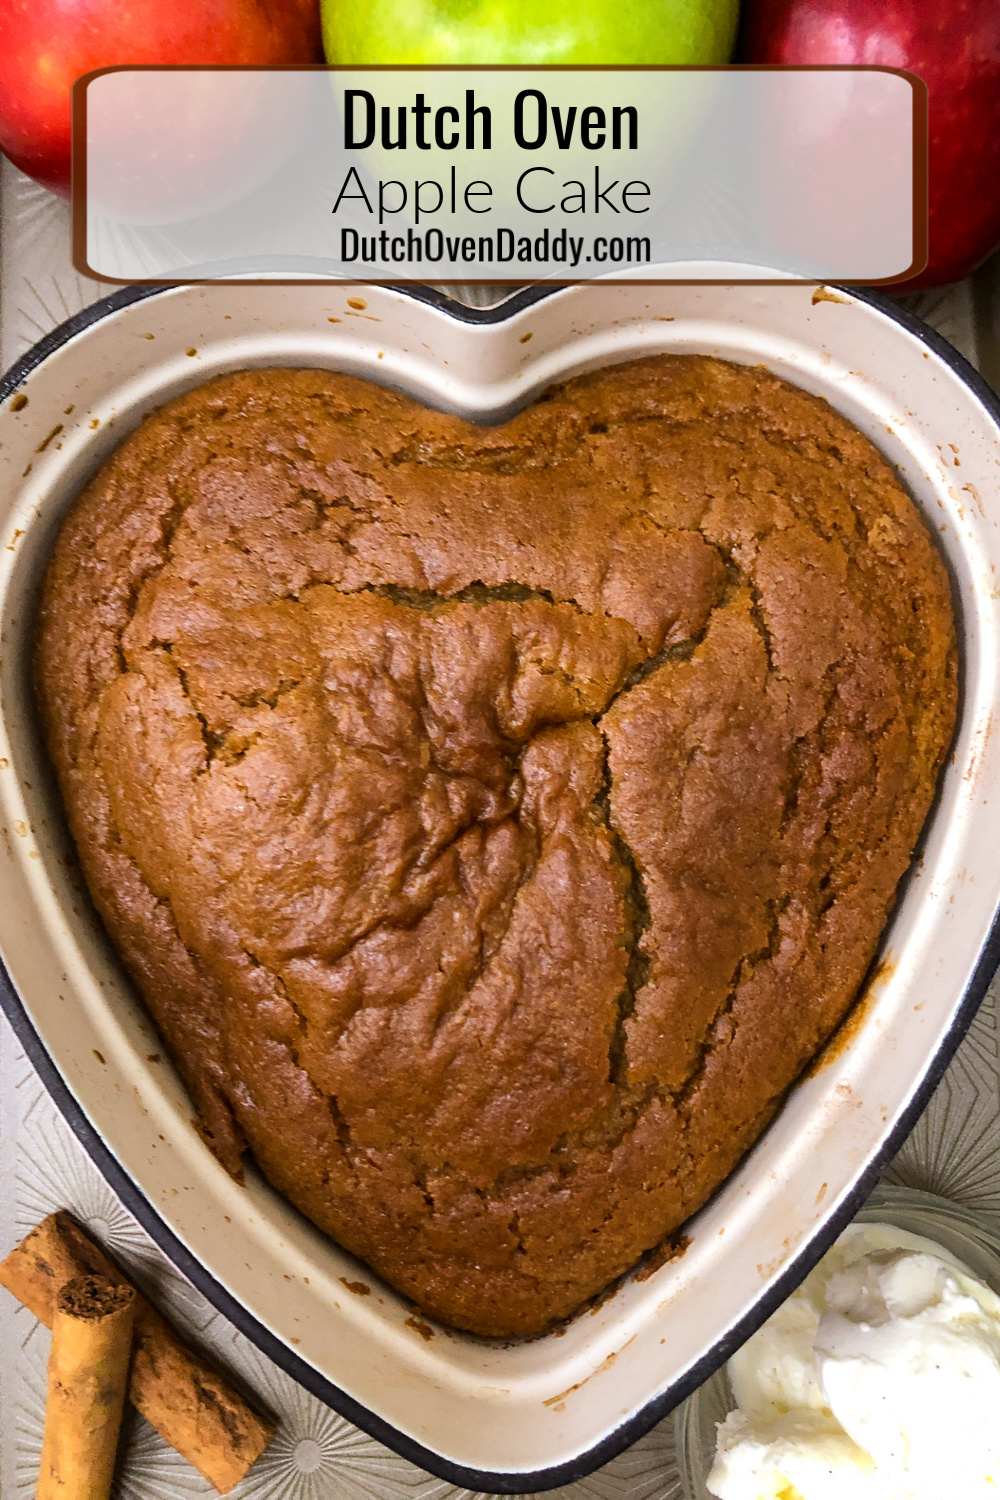 Freshly baked apple cake in a heart-shaped enamel dutch oven